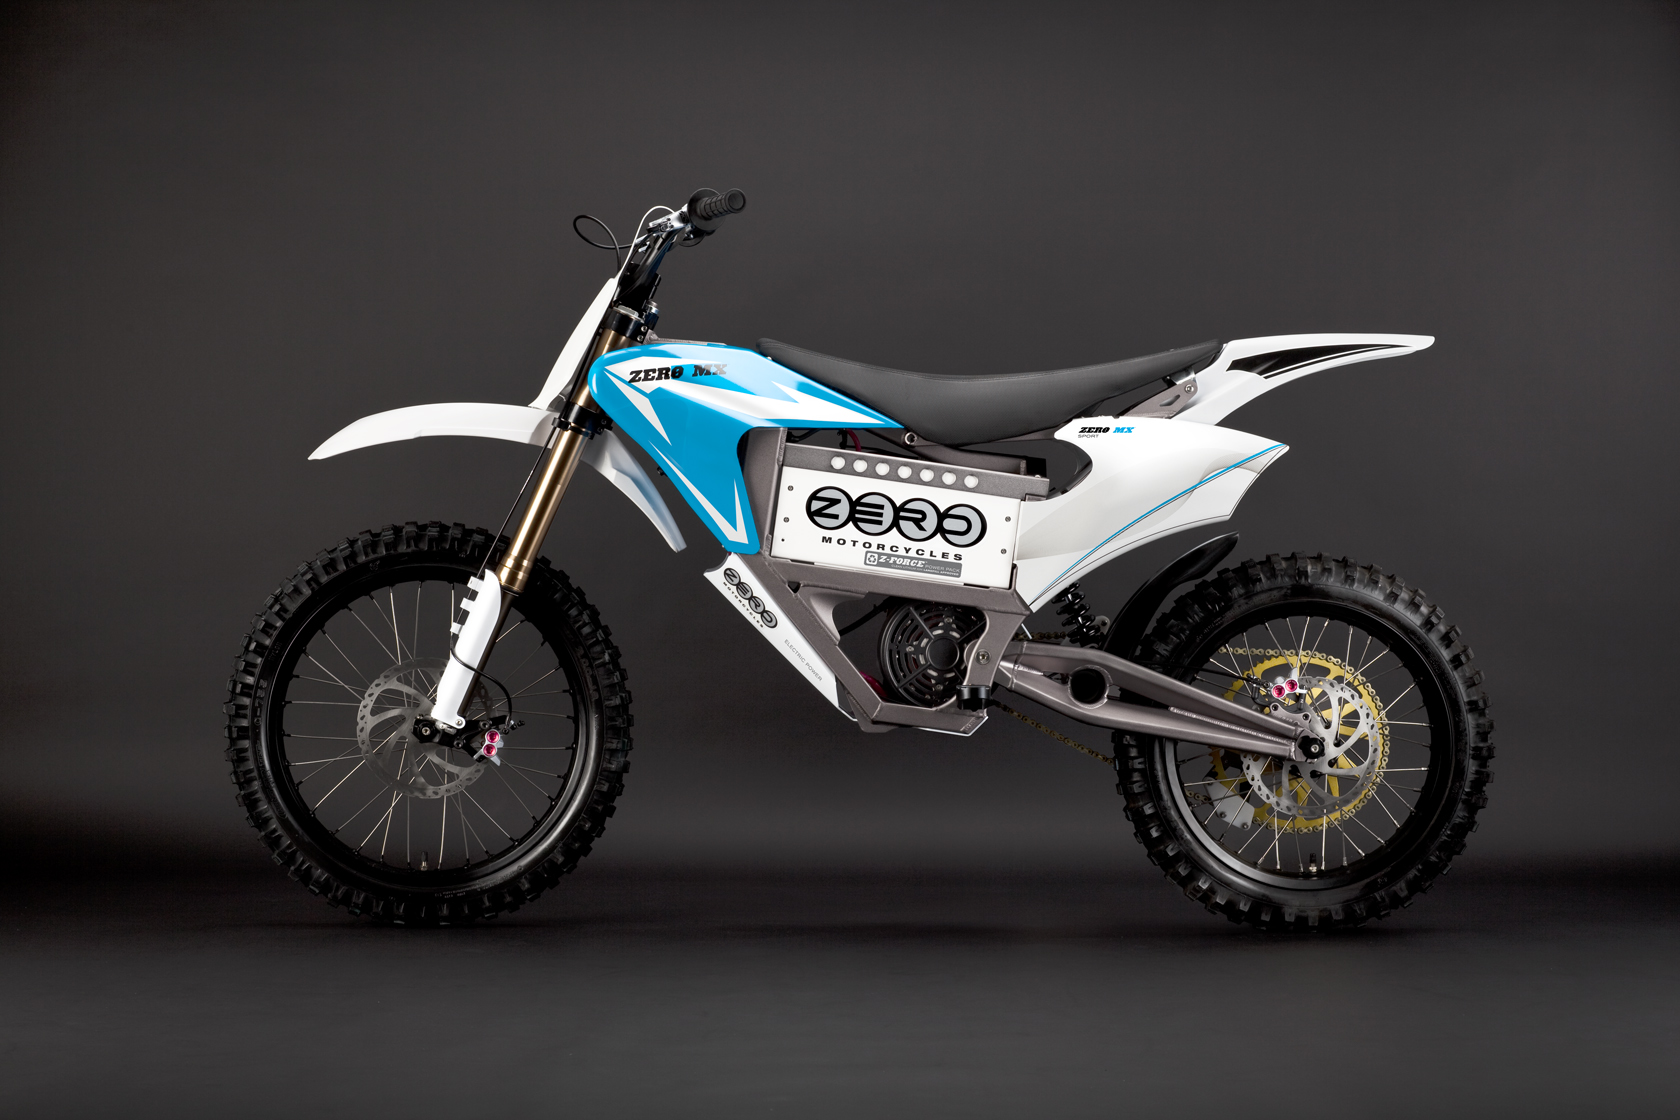 2010 Zero MX Electric Motorcycle: Blue Profile Left